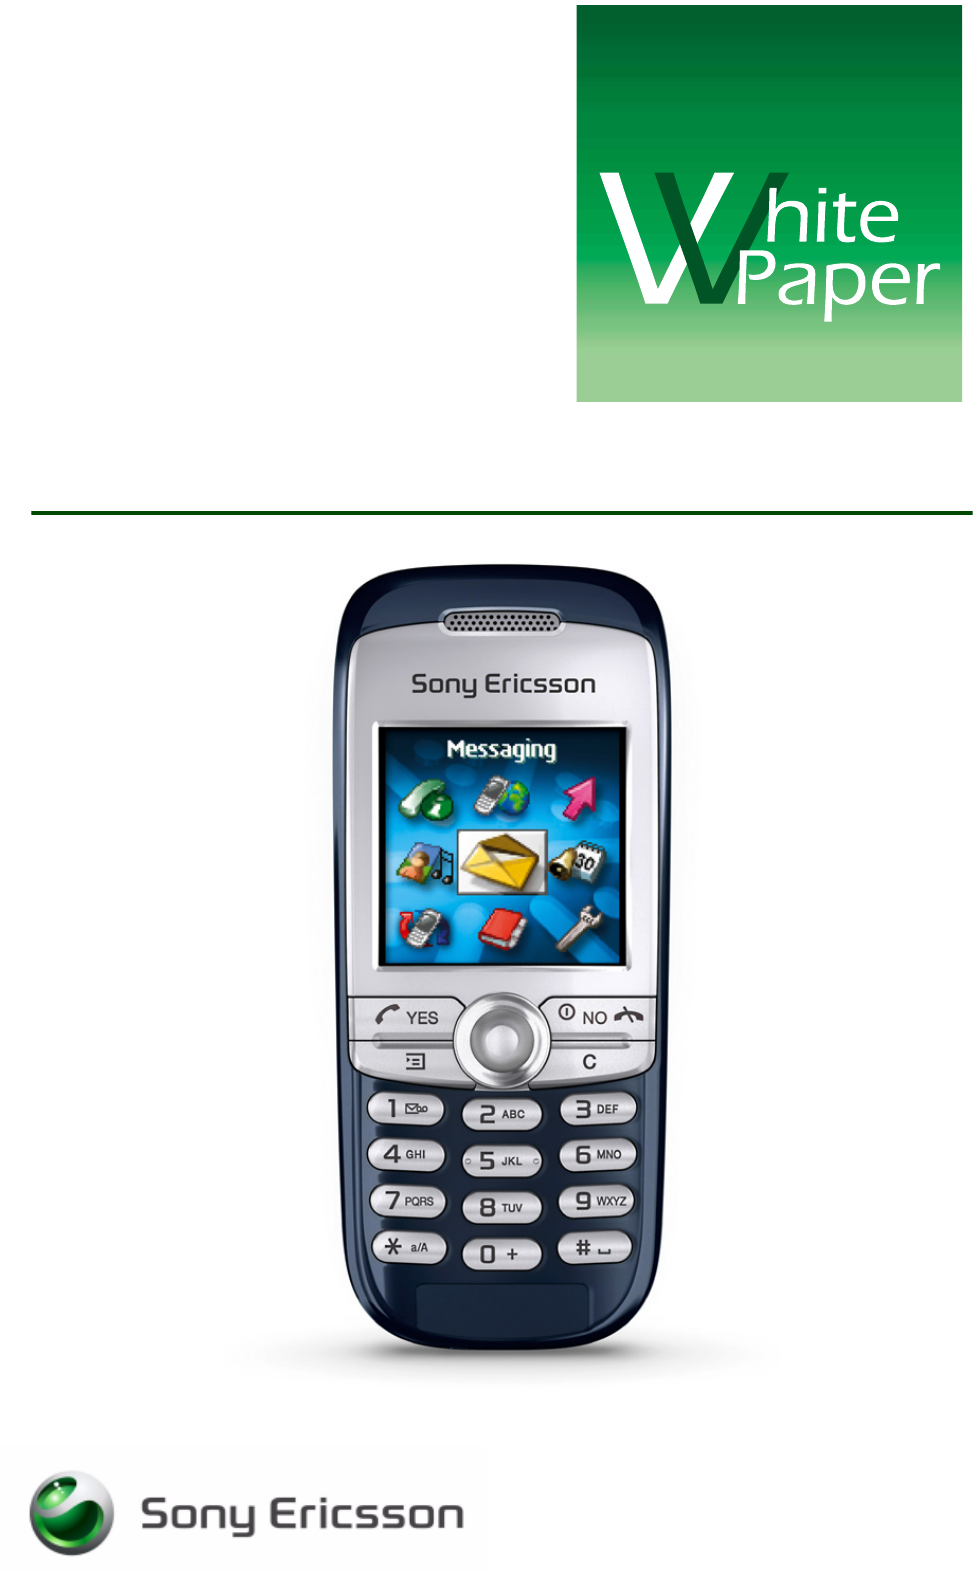 sony ericsson cell phone j200 user guide manualsonline com rh cellphone manualsonline com Pink Sony Ericsson Sony Ericsson Phones AT&T